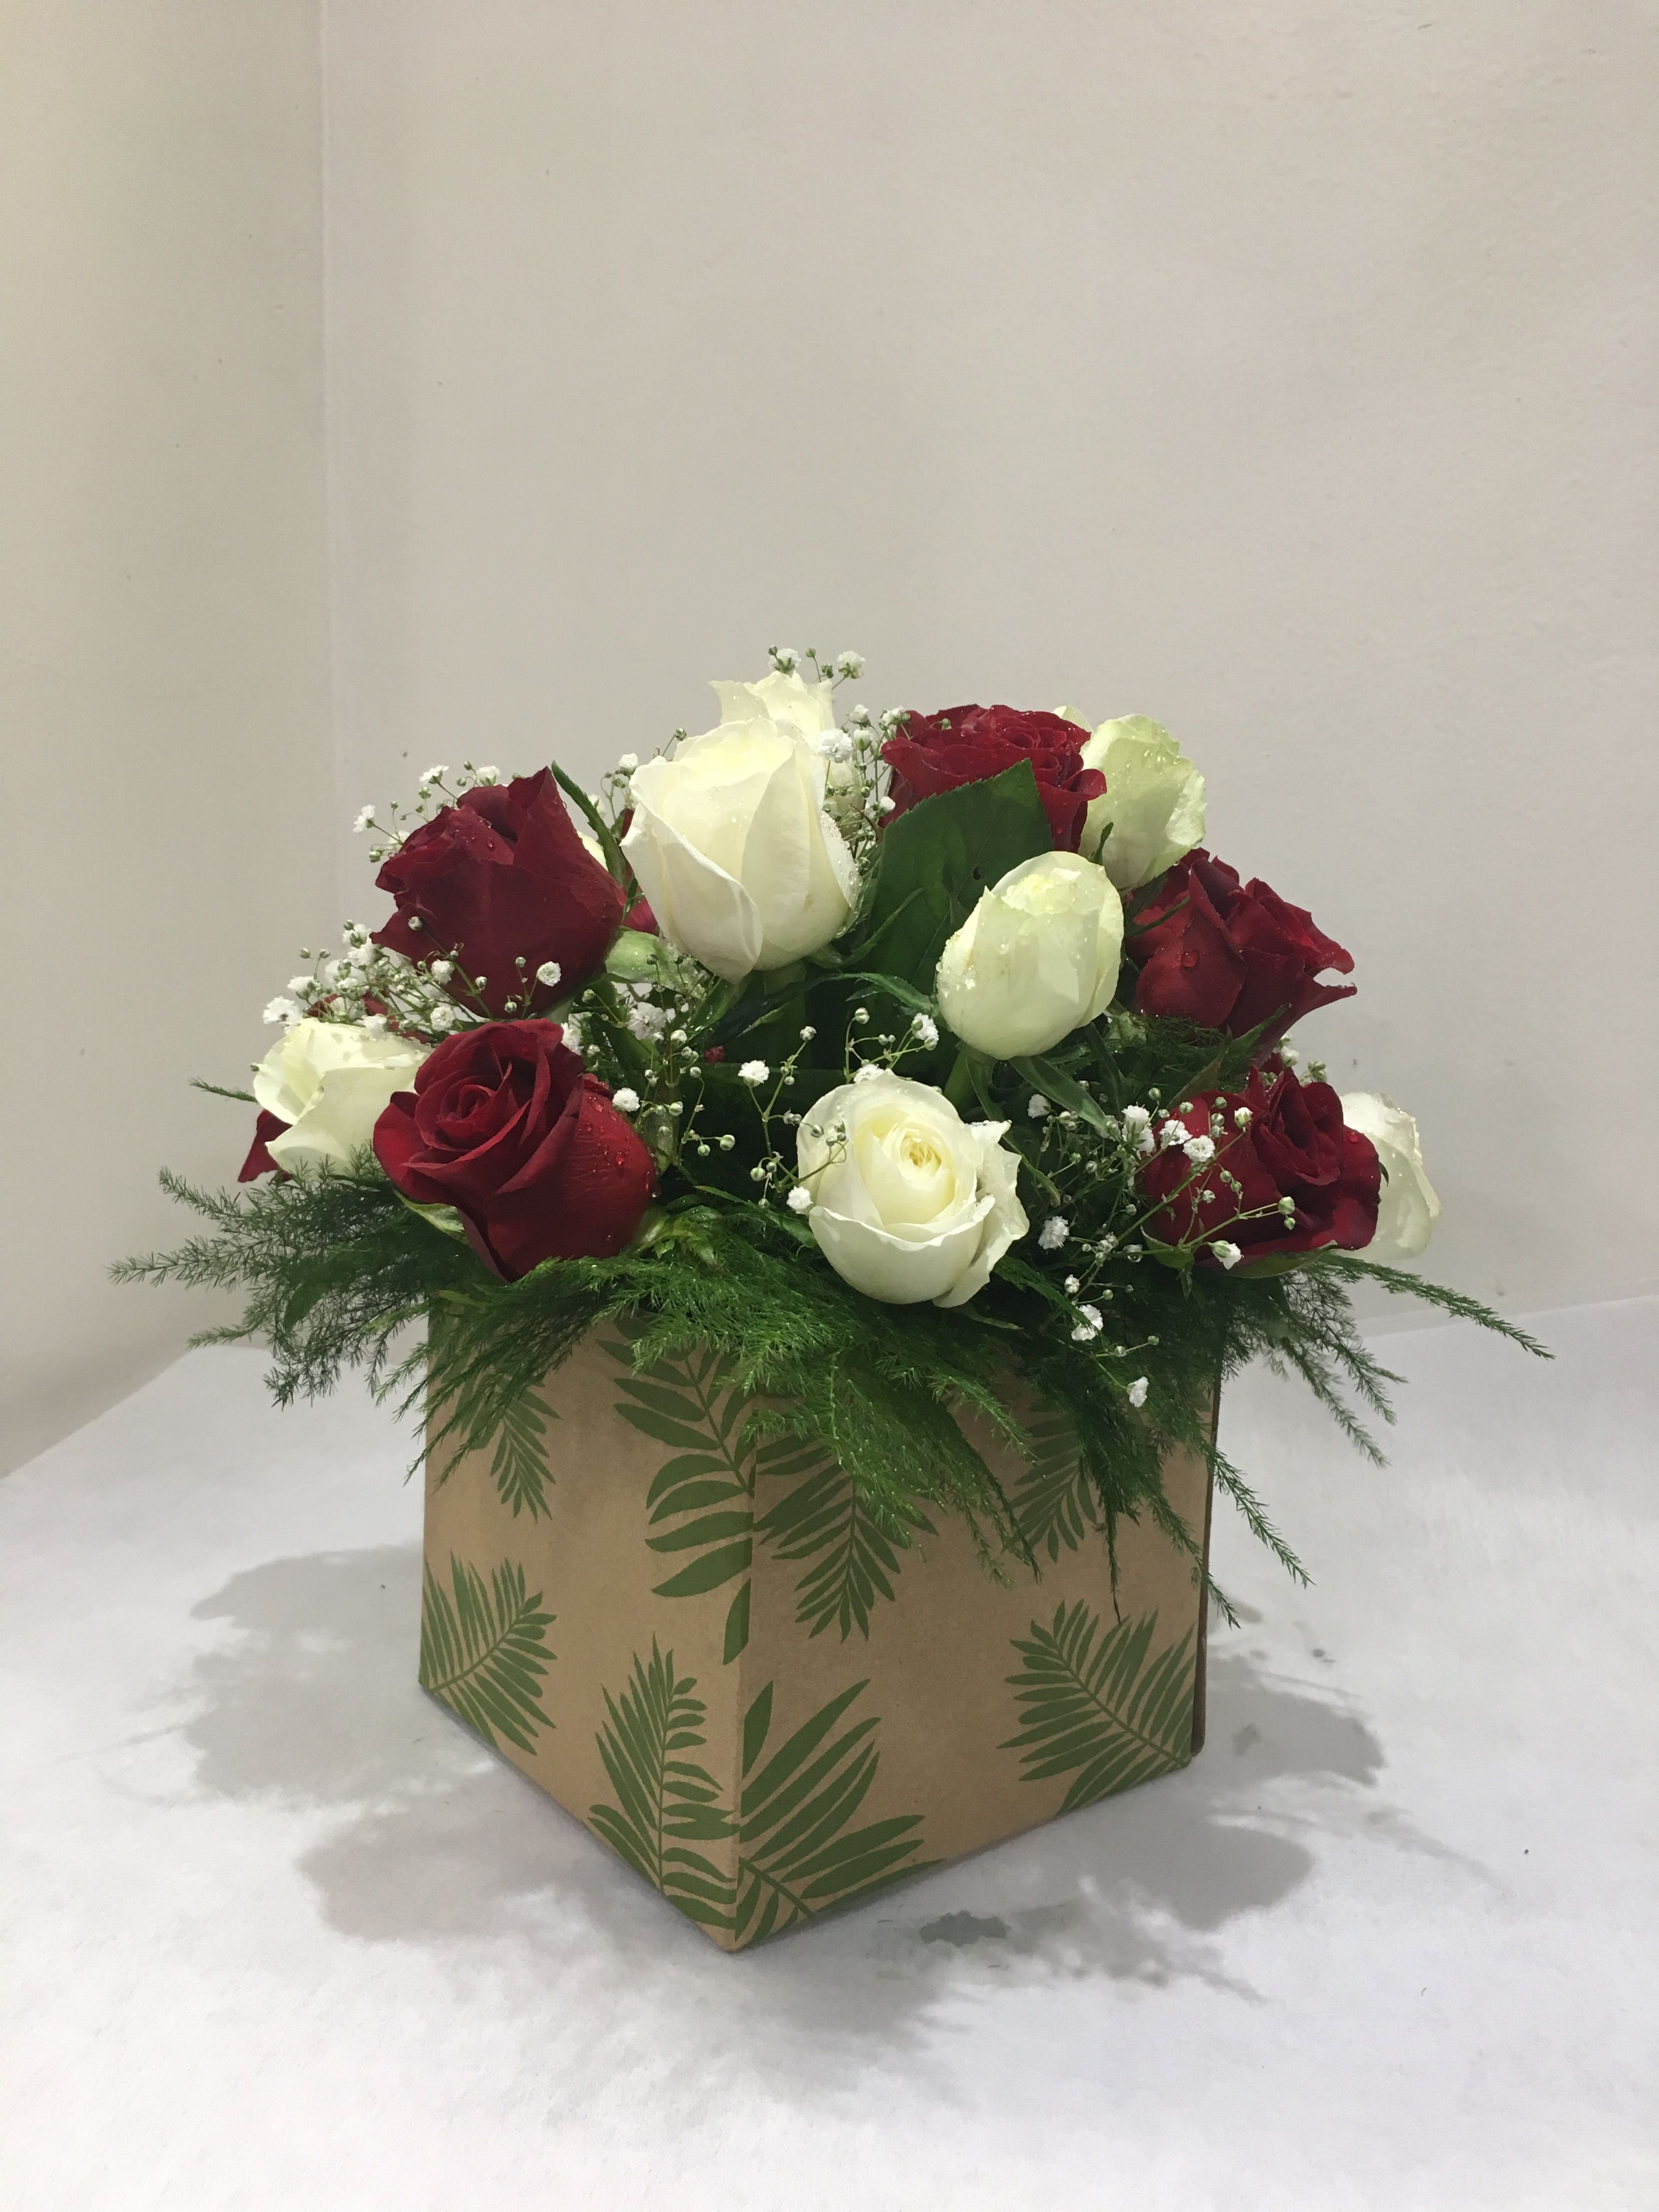 Blooms only makes selecting the perfect anniversary